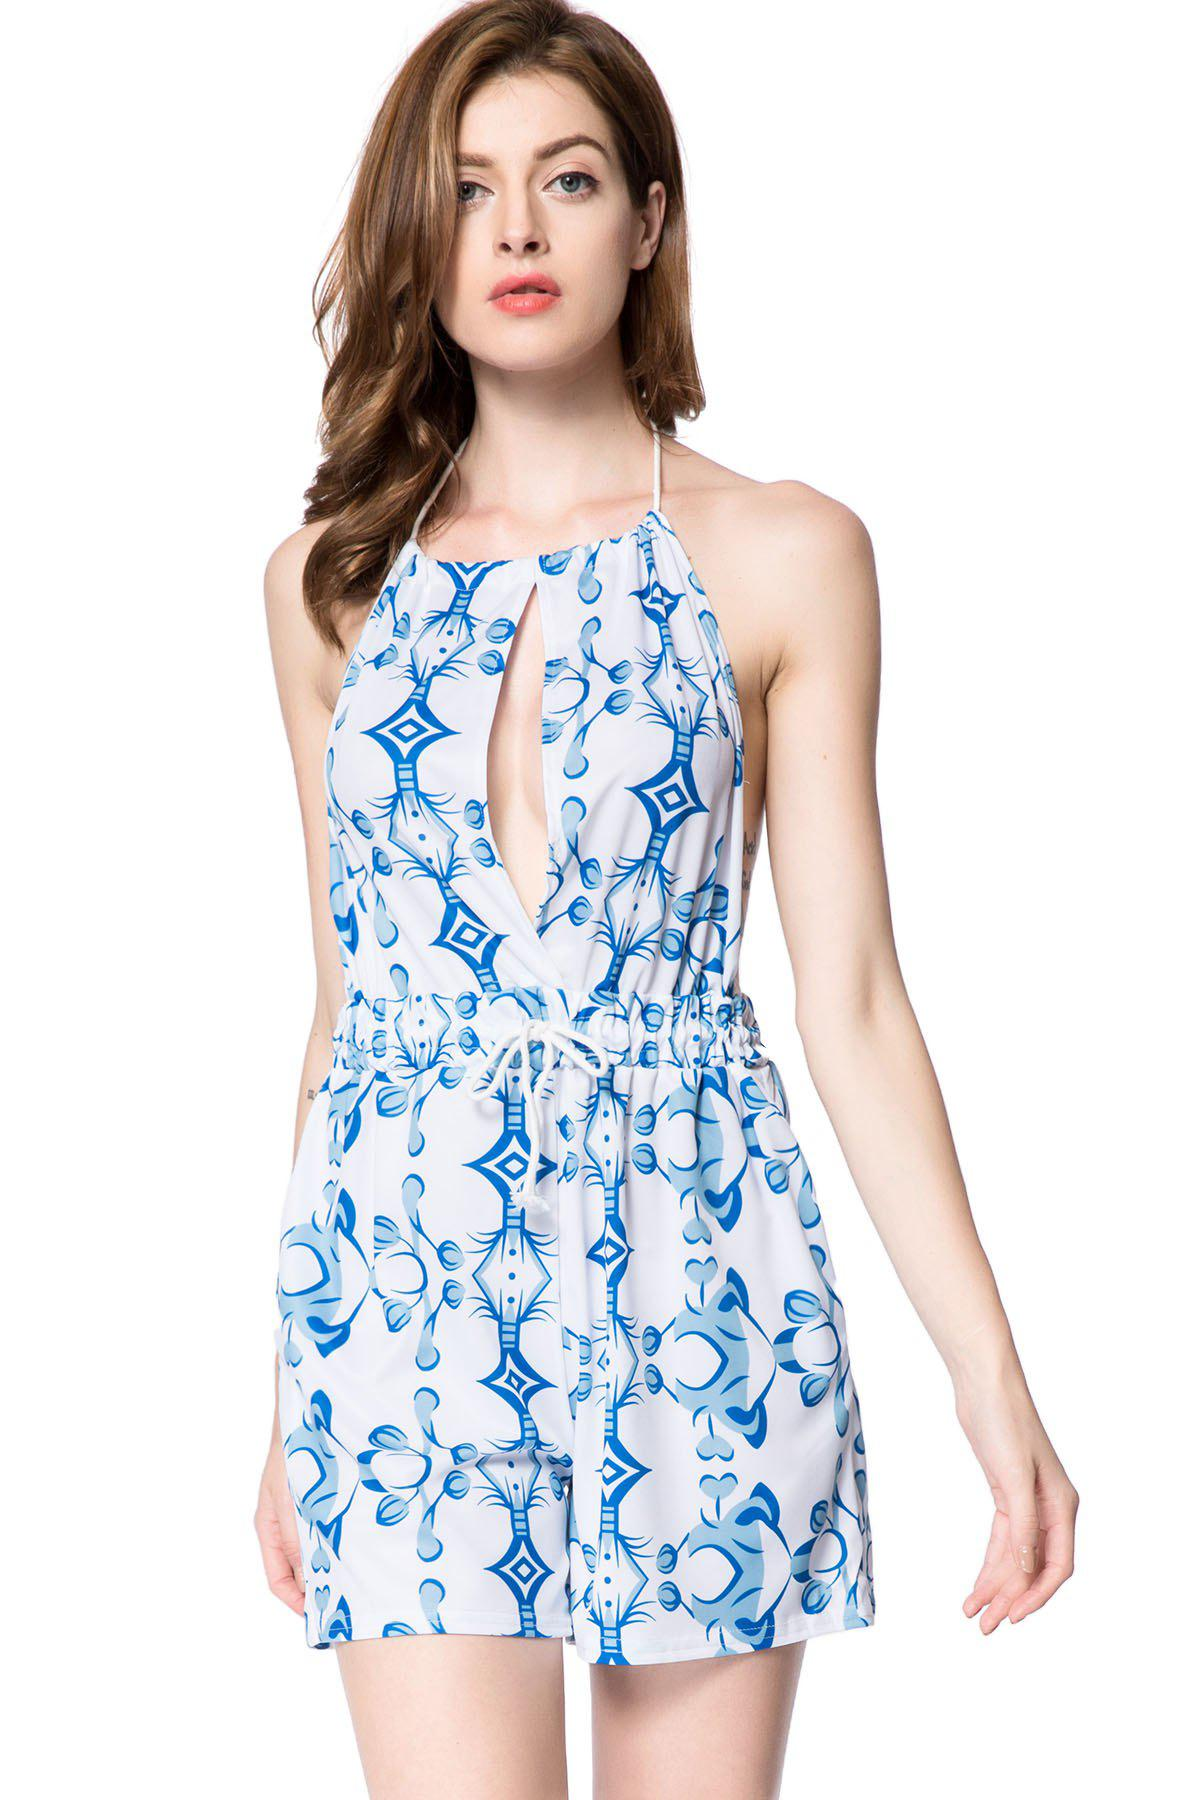 Sexy Halter Sleeveless Backless Hollow Out Printed Women's Romper